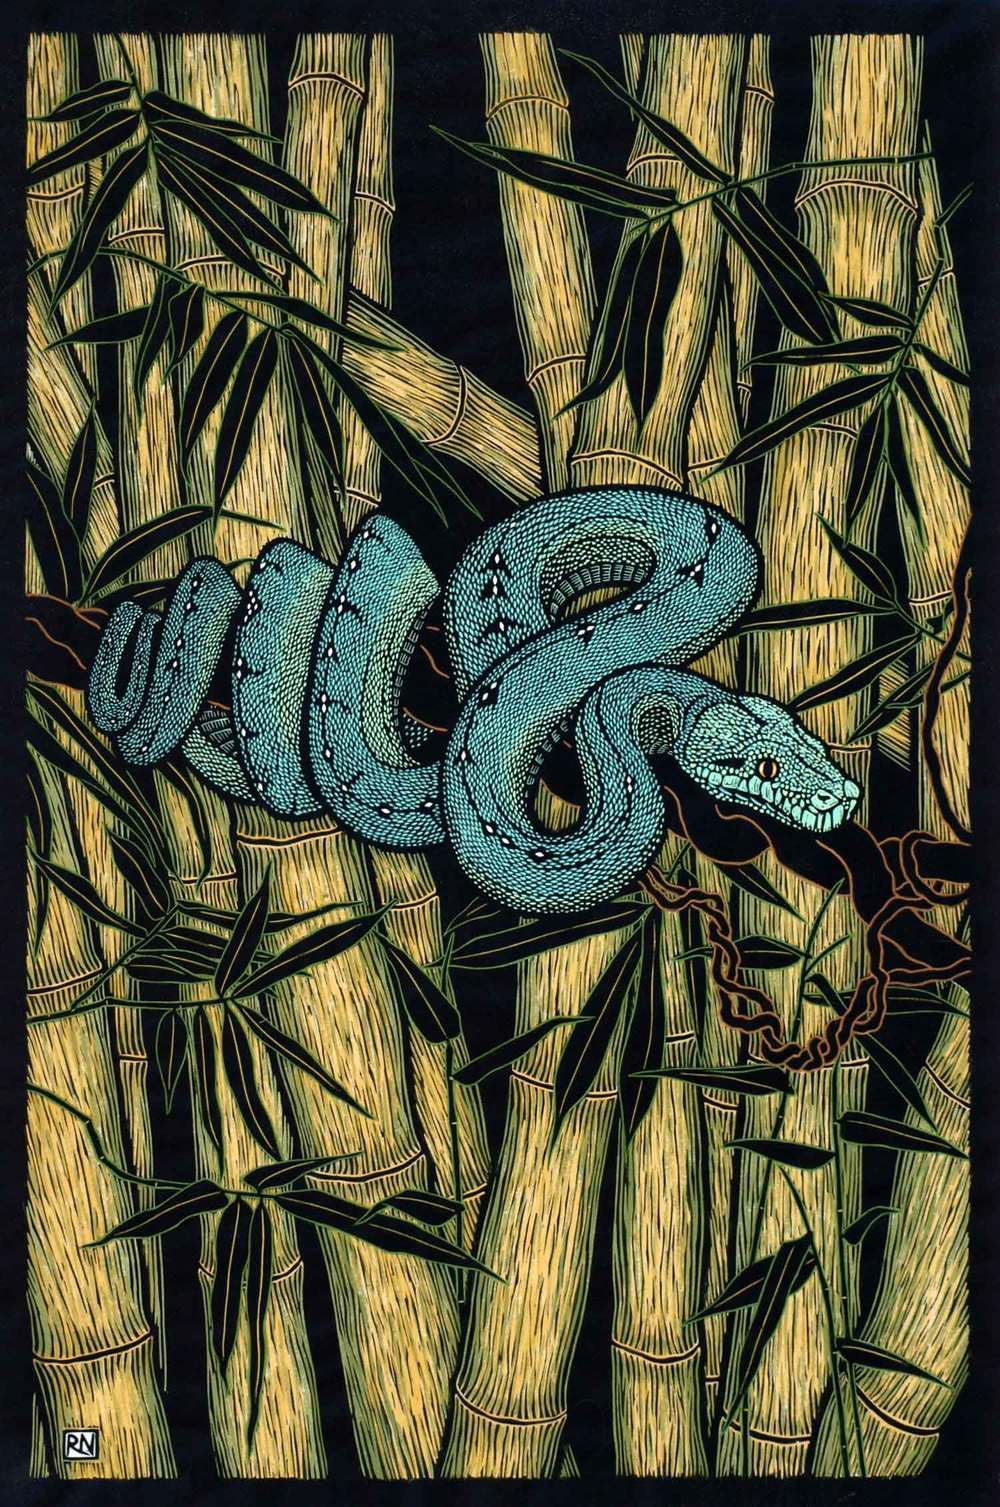 GREEN TREE PYTHON  76 X 50.5 CM EDITION OF 50  HAND COLOURED LINOCUT ON HANDMADE JAPANESE PAPER  $1,550